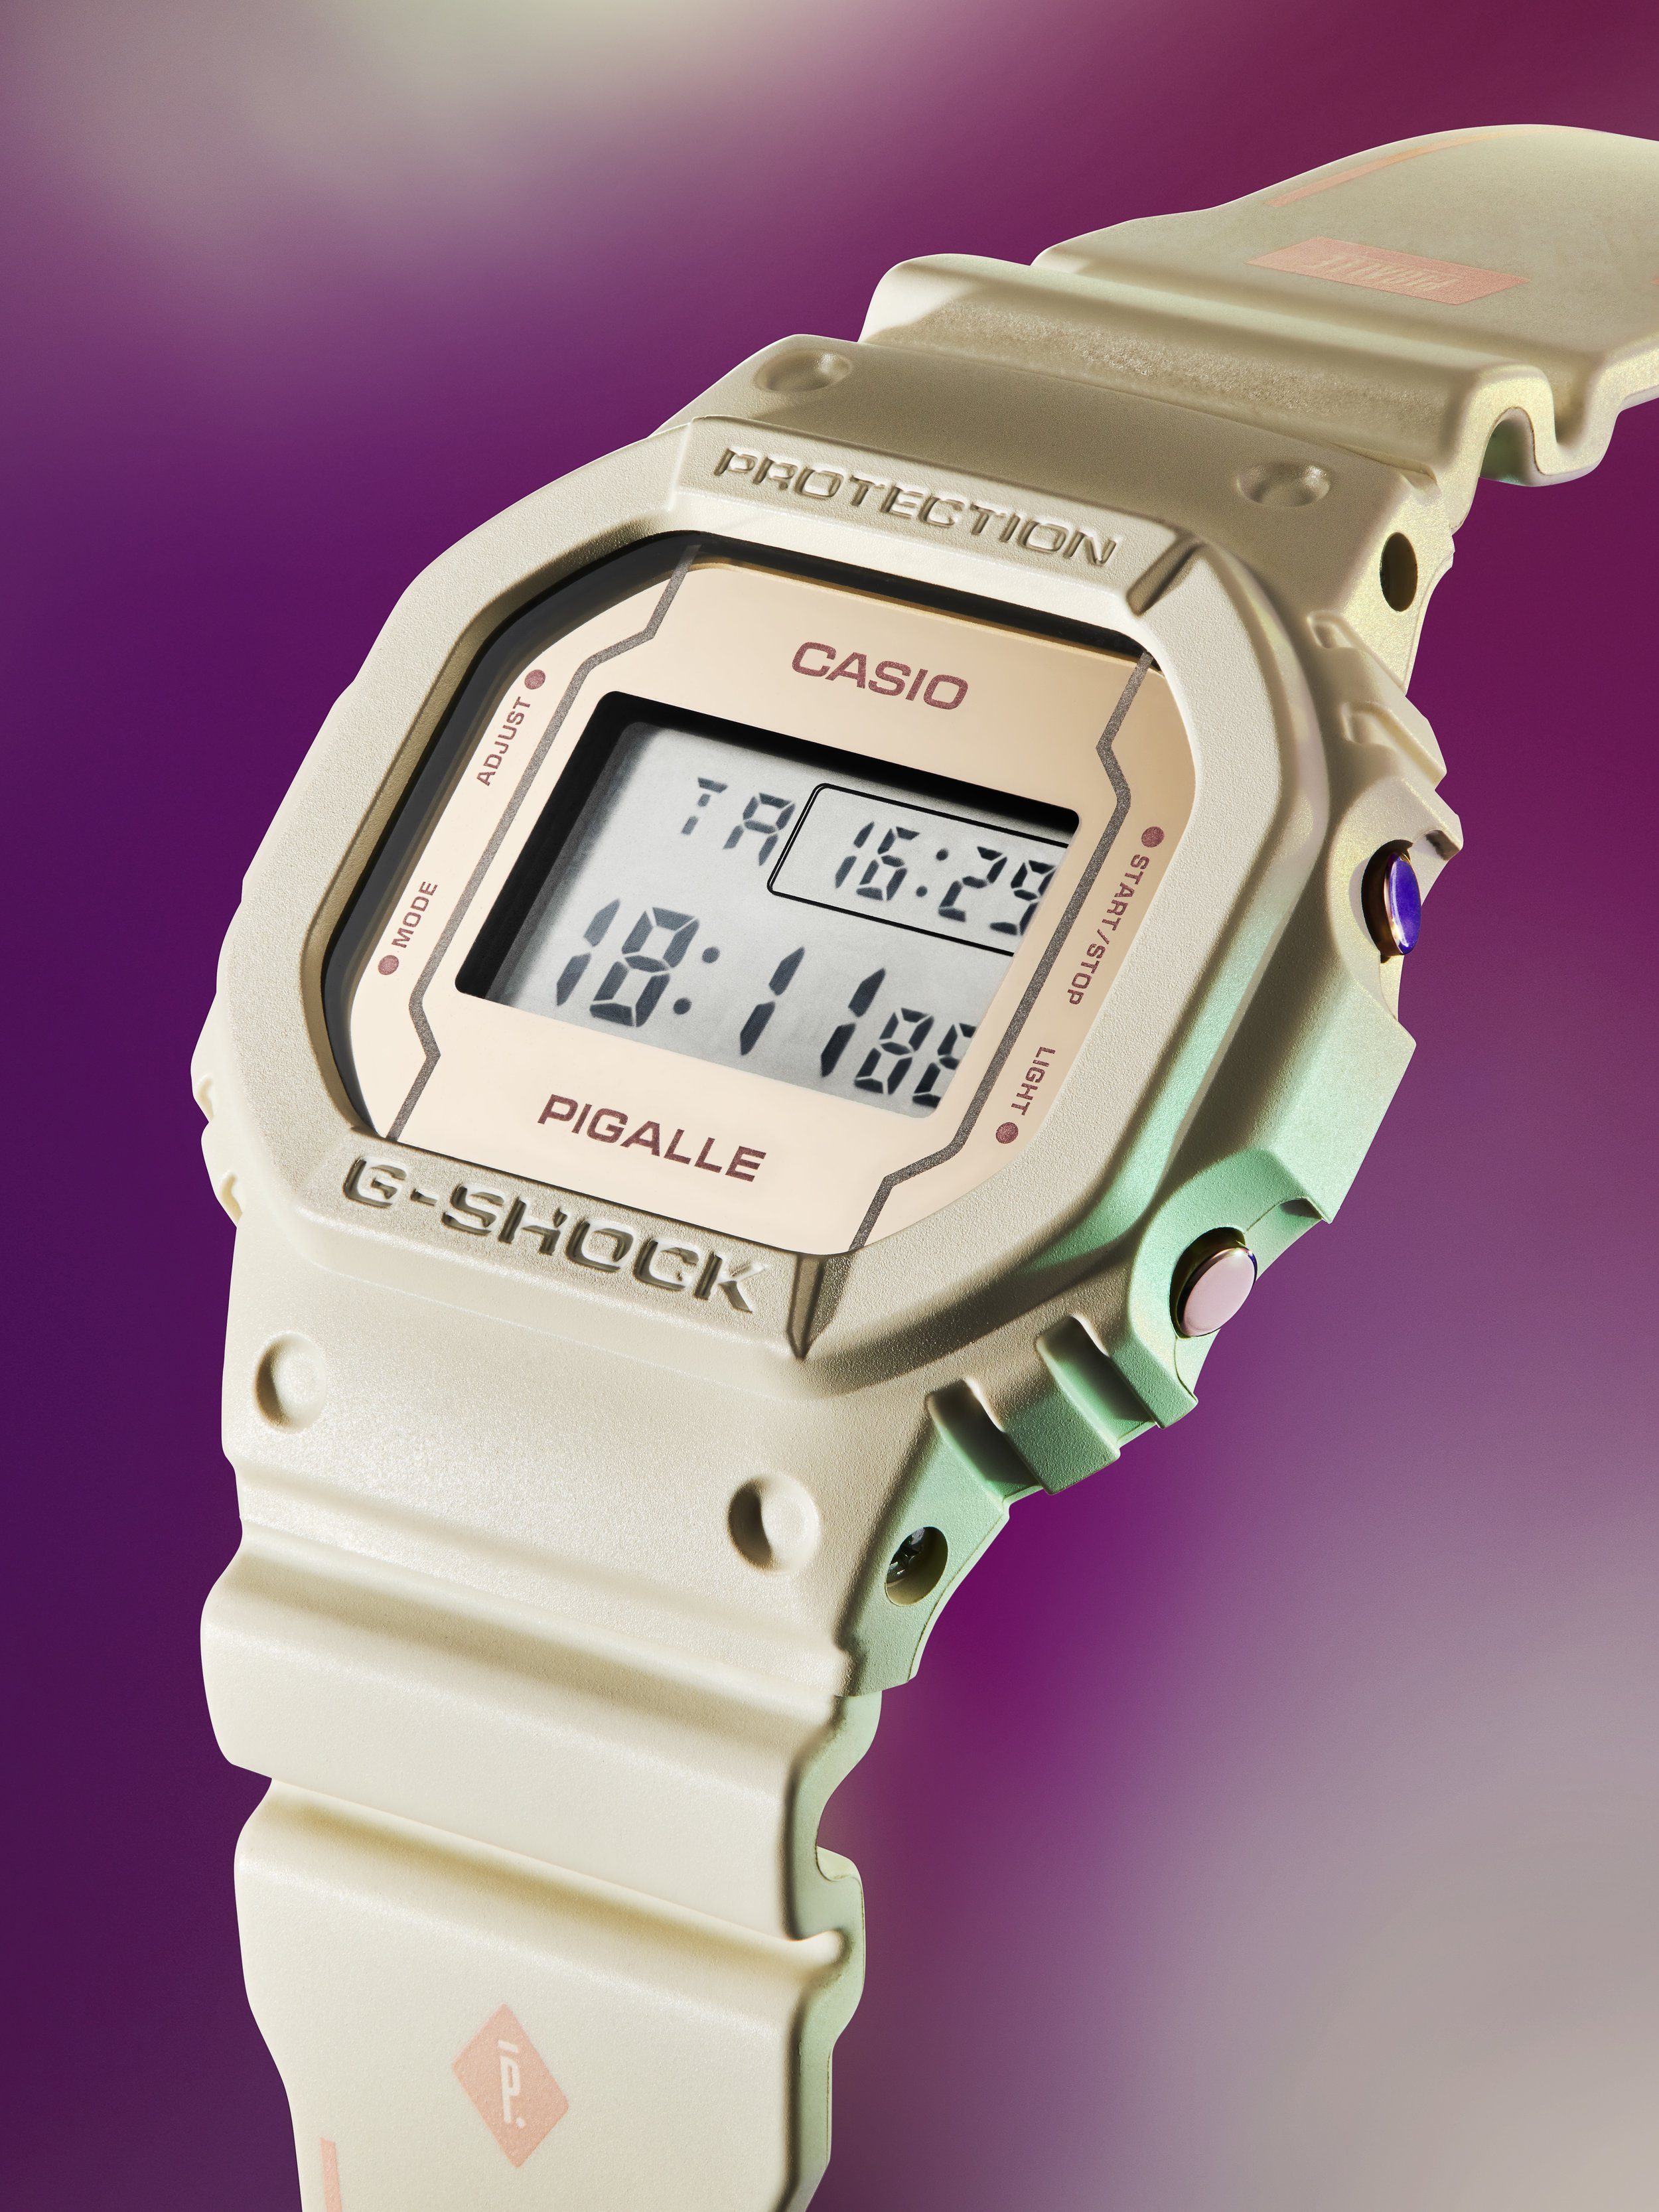 BOLD_G-SHOCK_CasioPigalle_white_(c)Younès Klouche.jpg